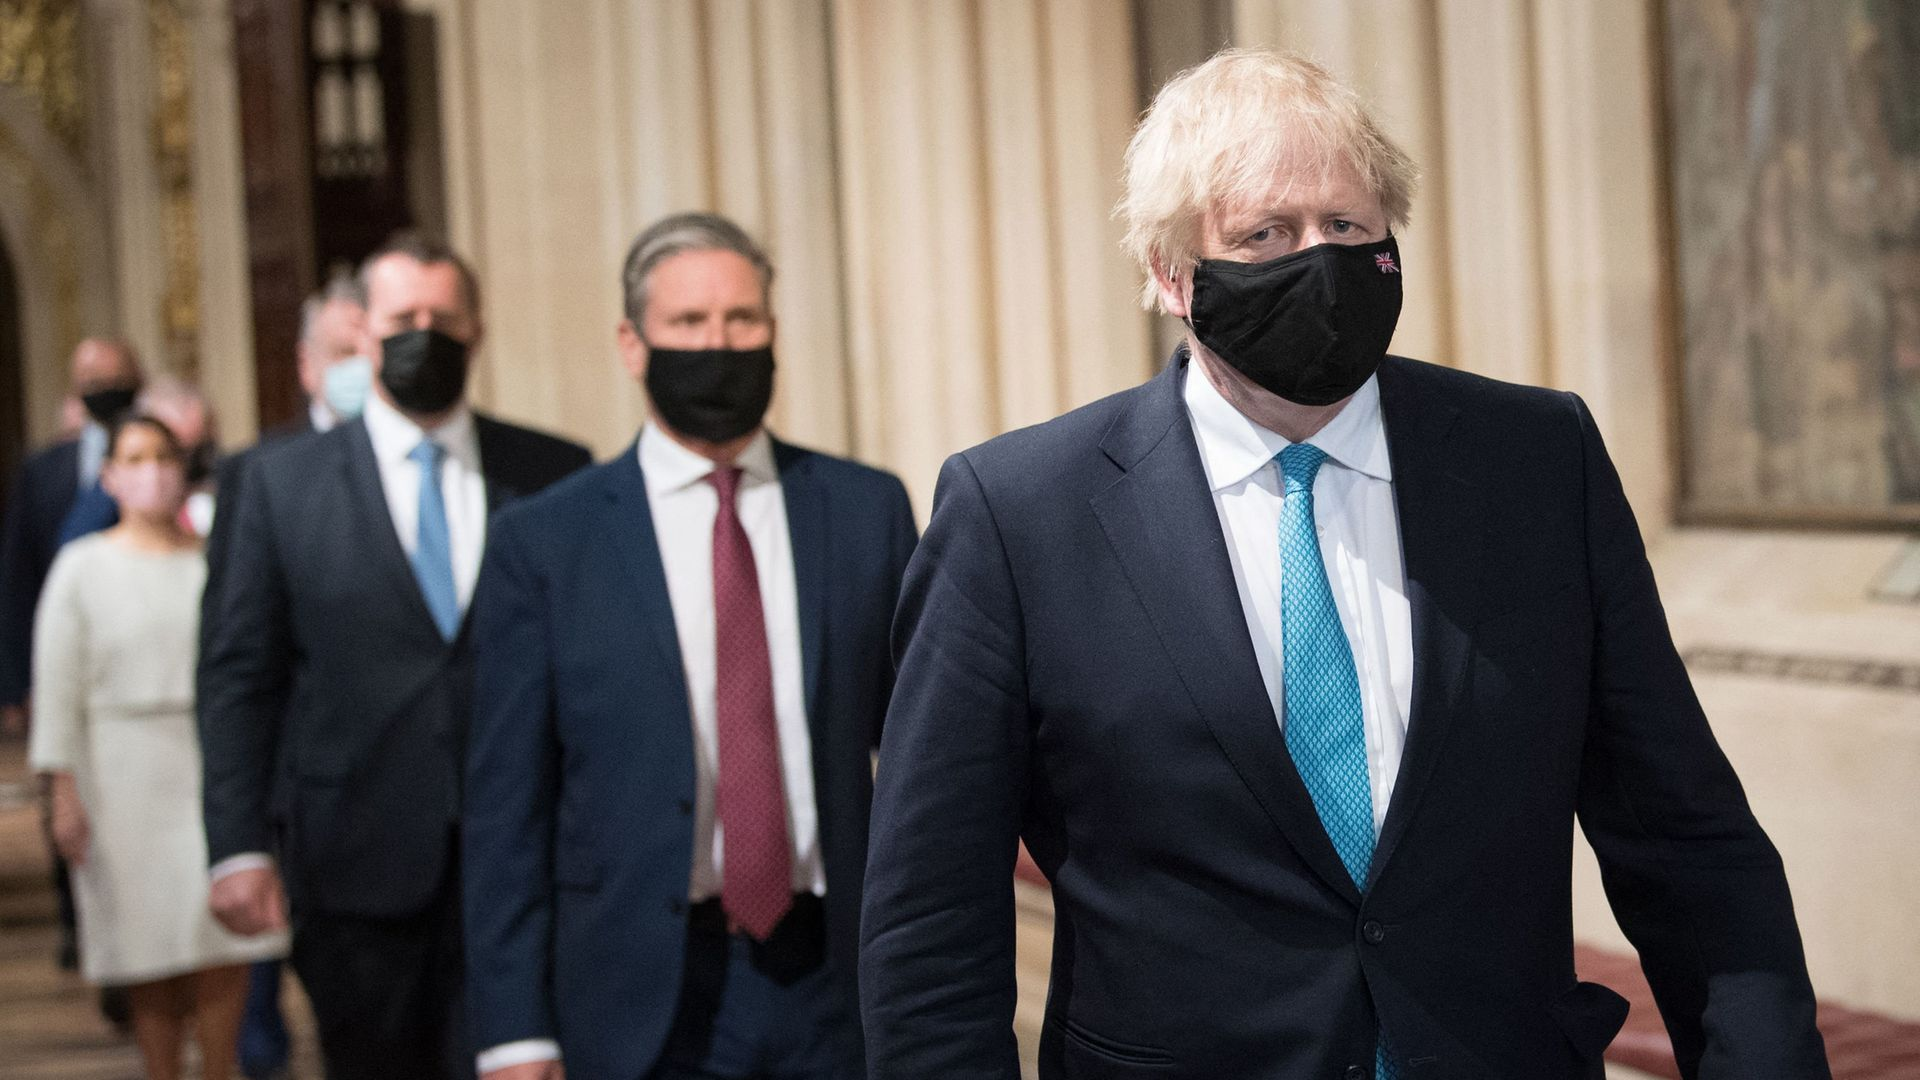 Prime Minister Boris Johnson (R) and opposition leader Keir Starmer (C), both wearing face coverings, walk in a socially distanced single file line through the Central Lobby after listening to the Queen's Speech - Credit: POOL/AFP via Getty Images